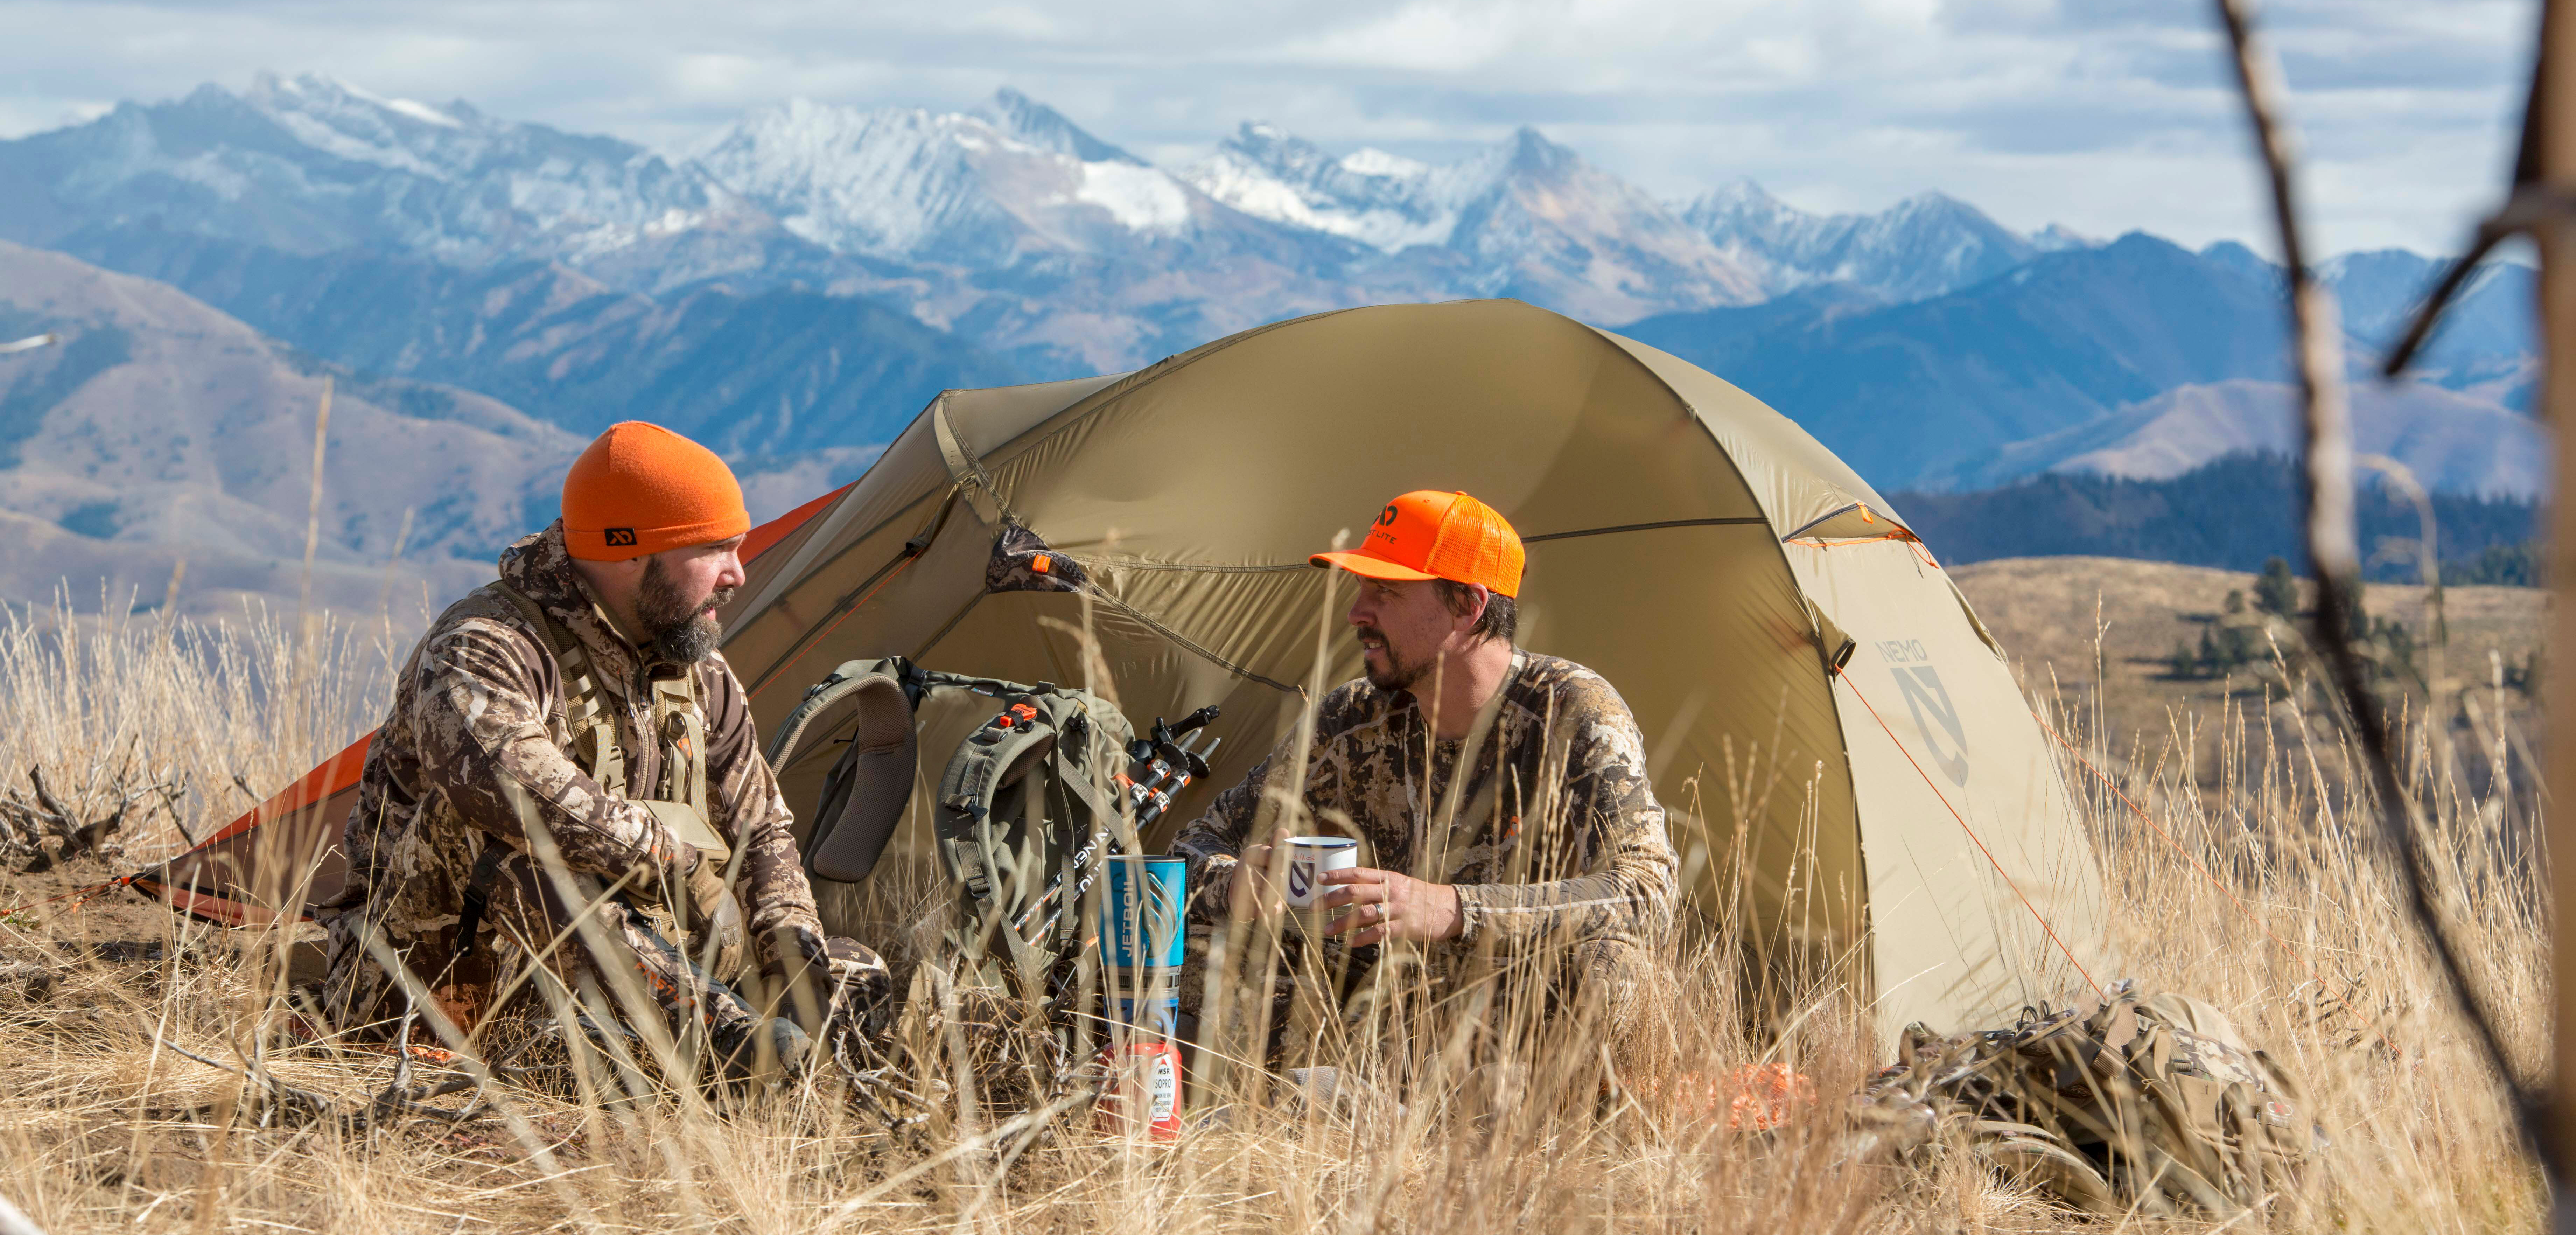 NEMO Teams With First Lite on Ultralight Camping Kit for